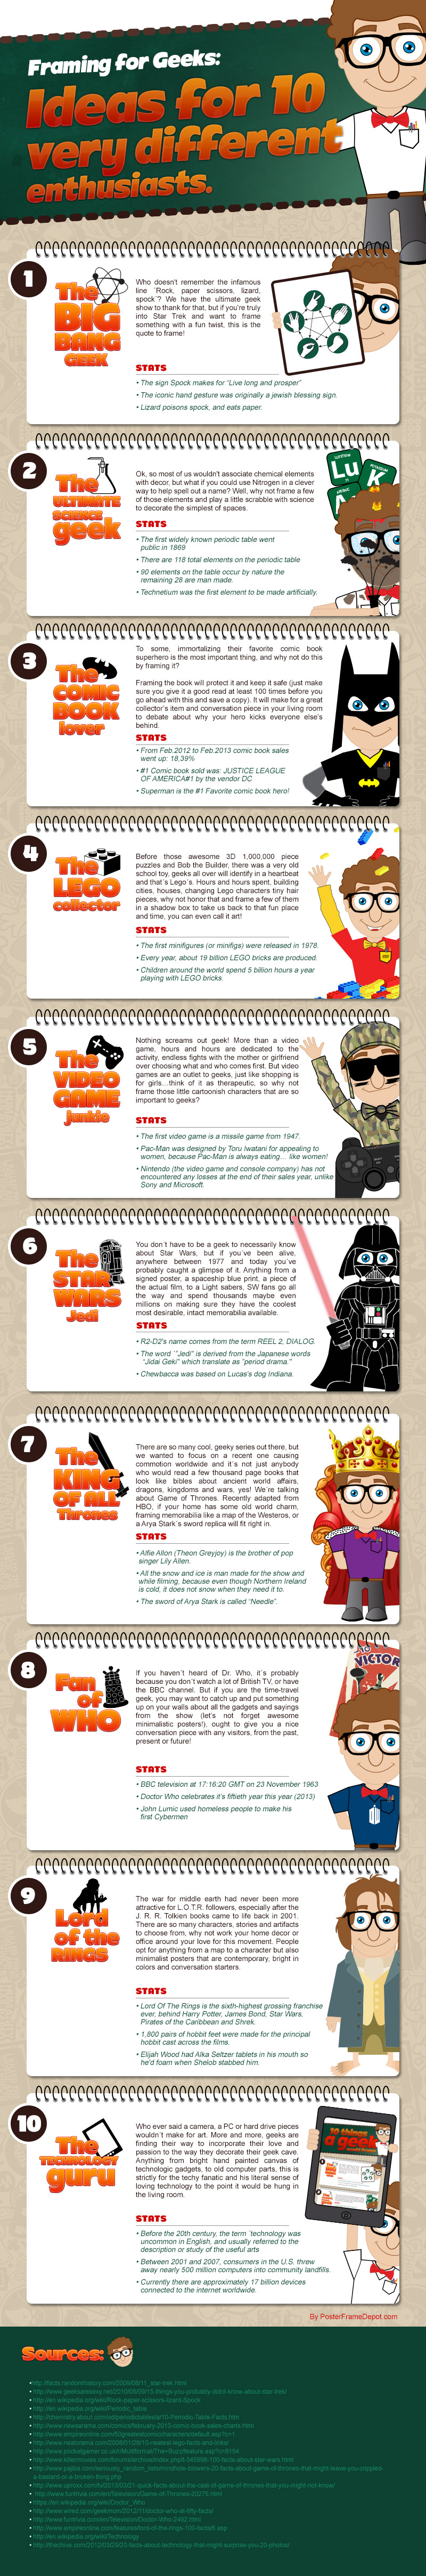 10 Things a Geek Would Frame Infographic